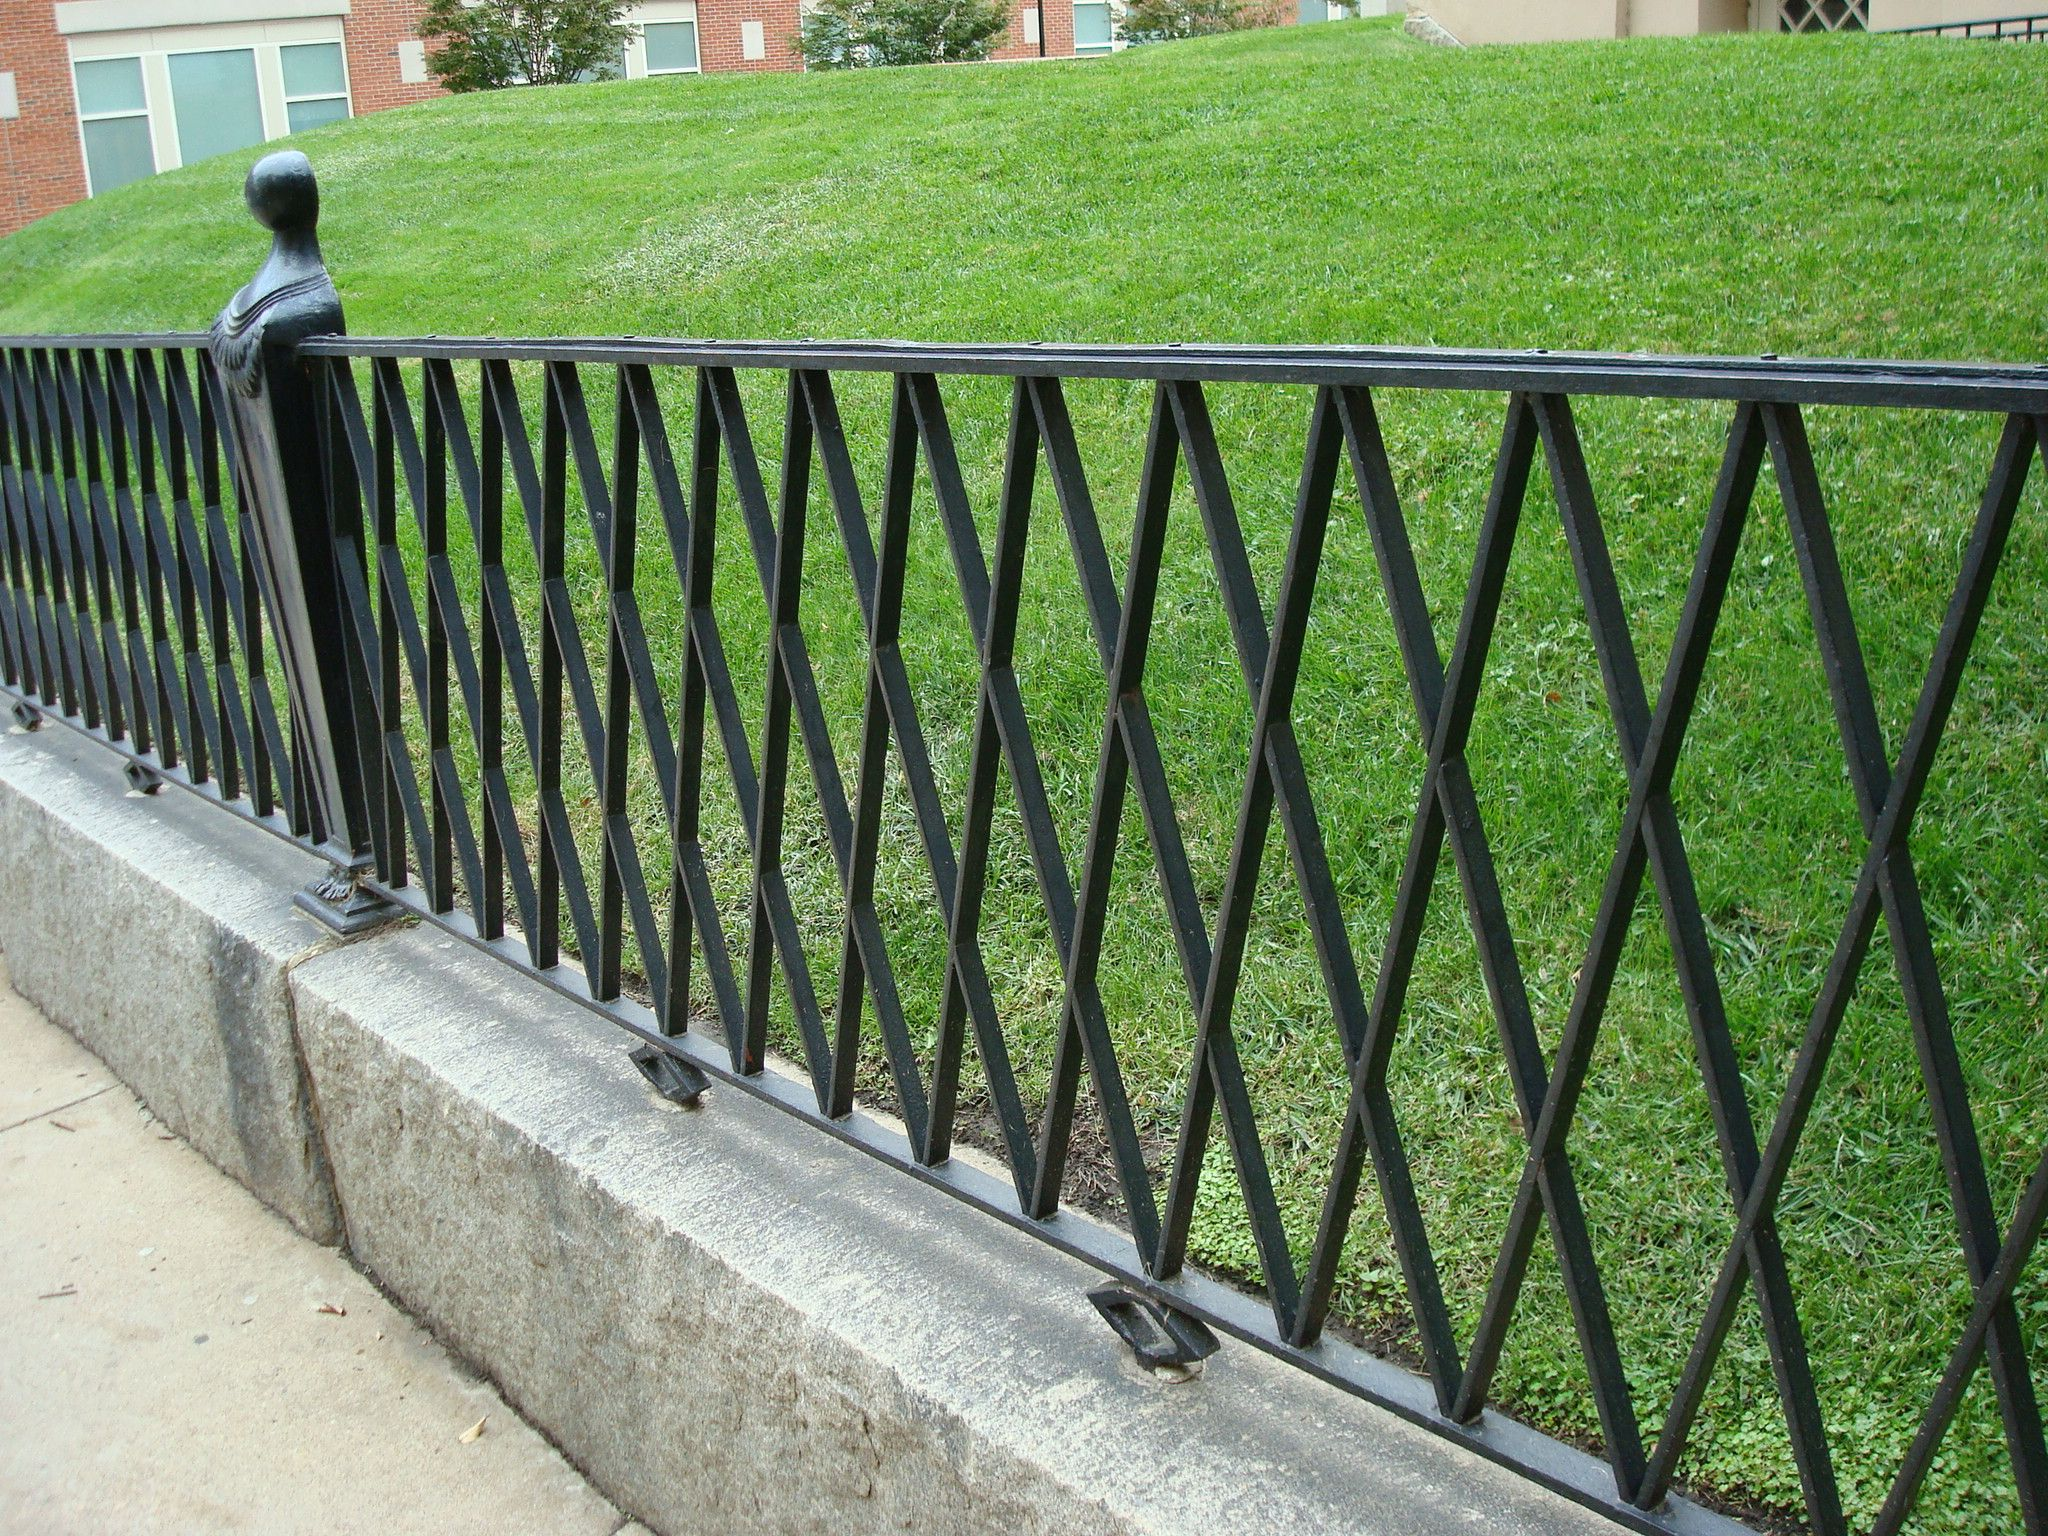 black wrought iron fence ideas  Dohoe.com  Metal garden fencing